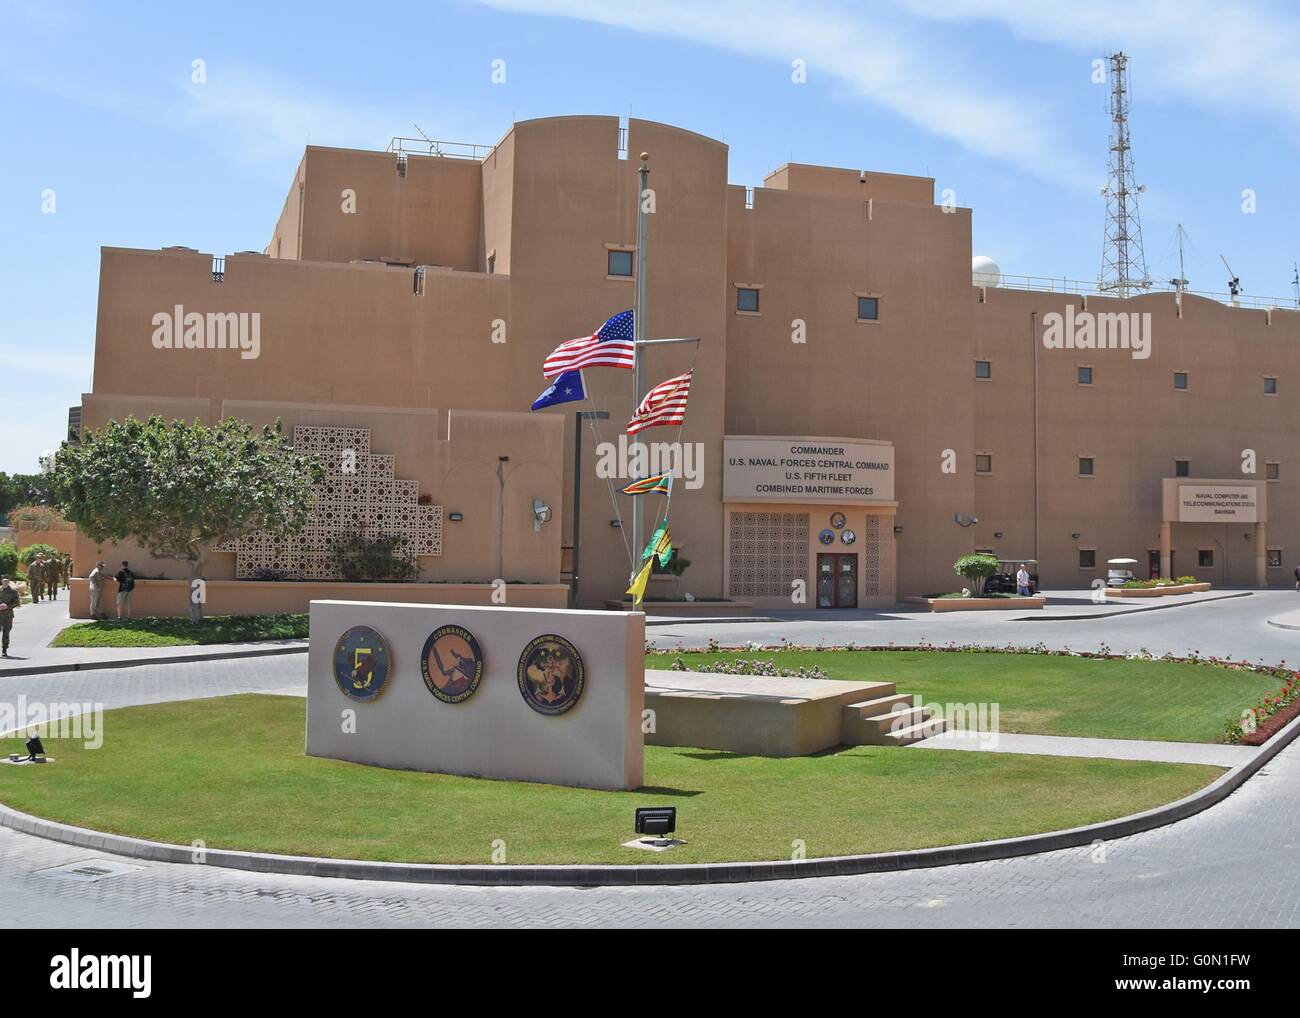 U.S. Naval Forces Central Command headquarters building March 25, 2016 in Manama, Bahrain. - Stock Image